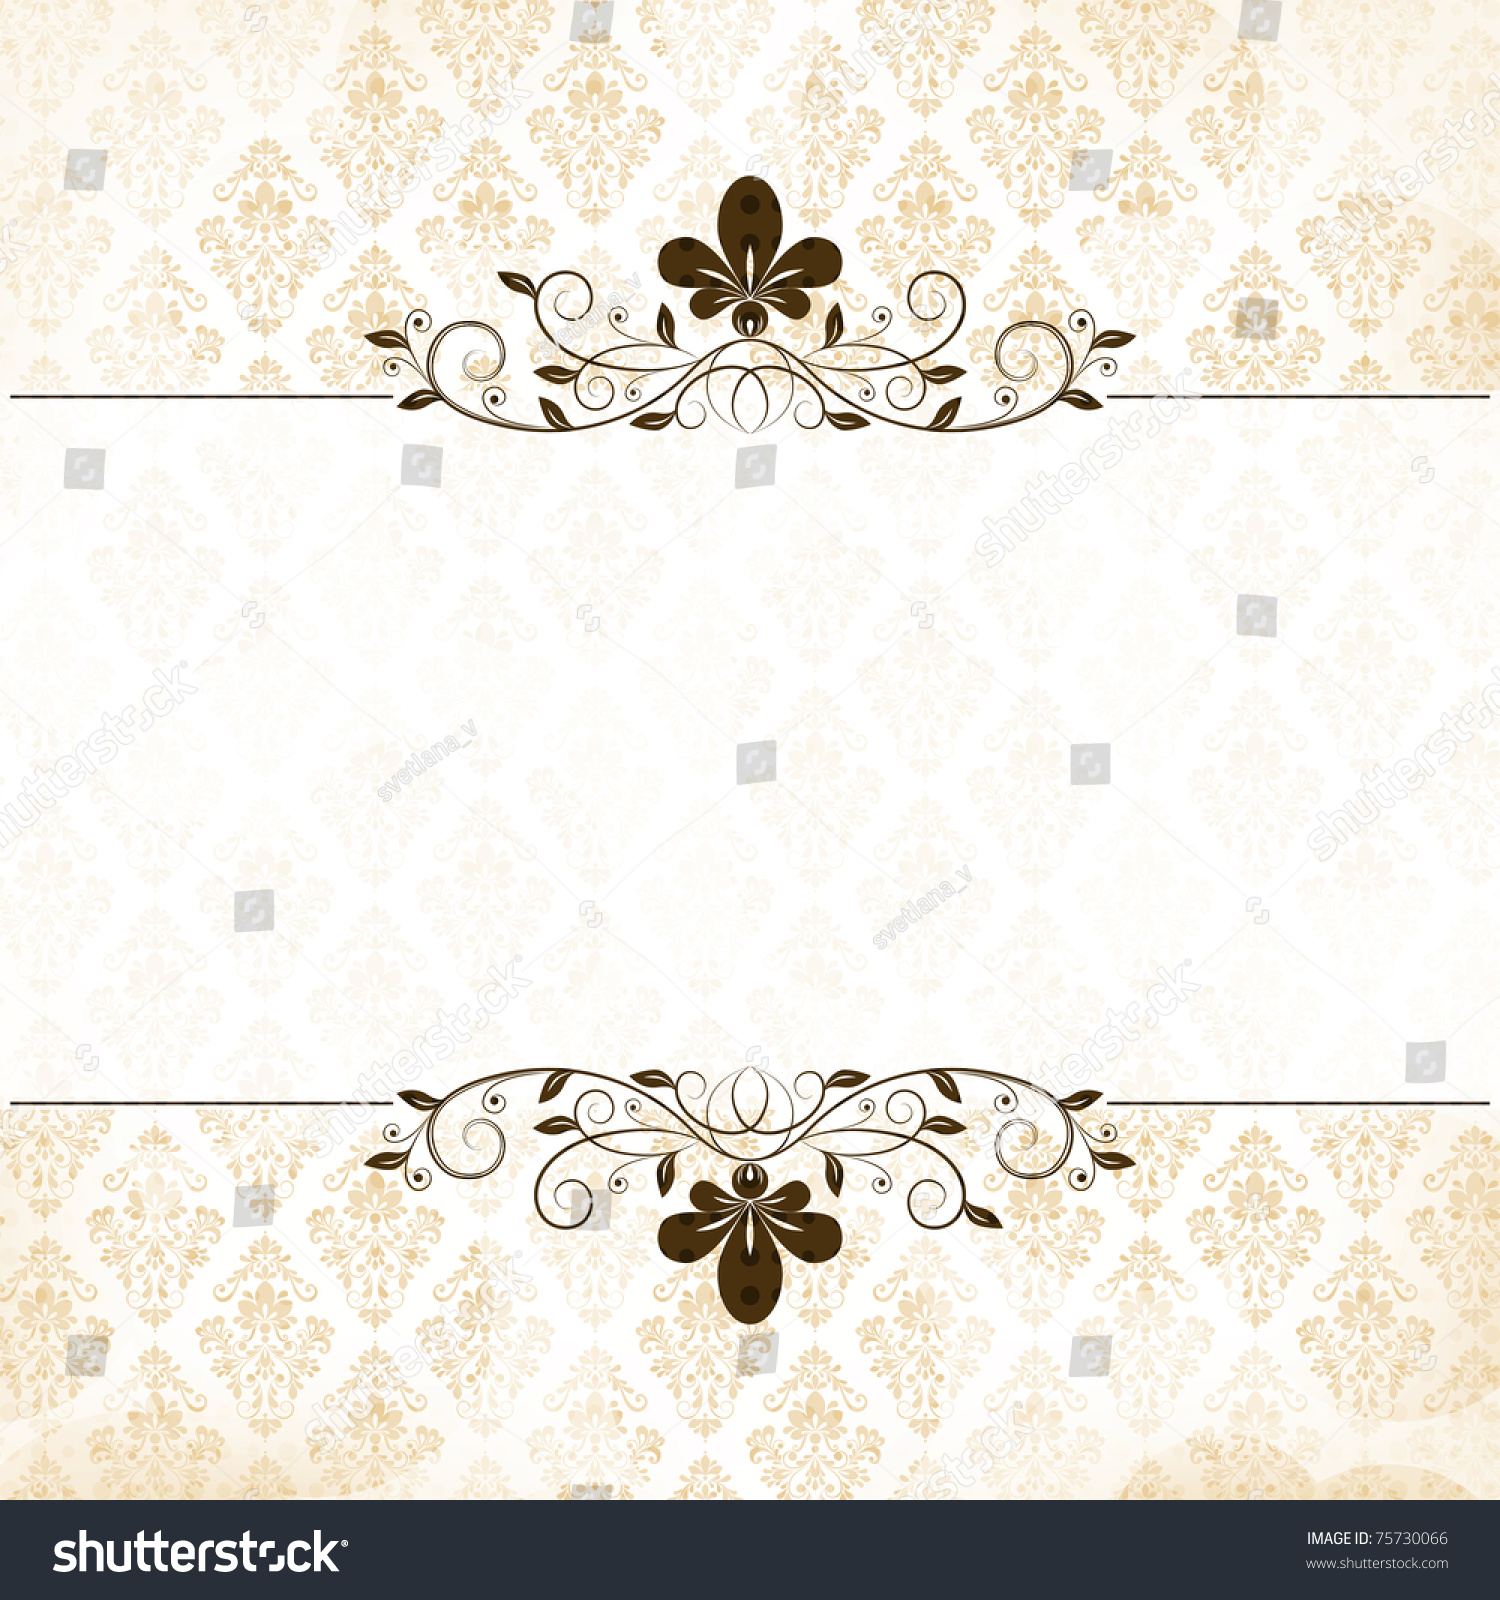 Vector calligraphy vintage floral background with